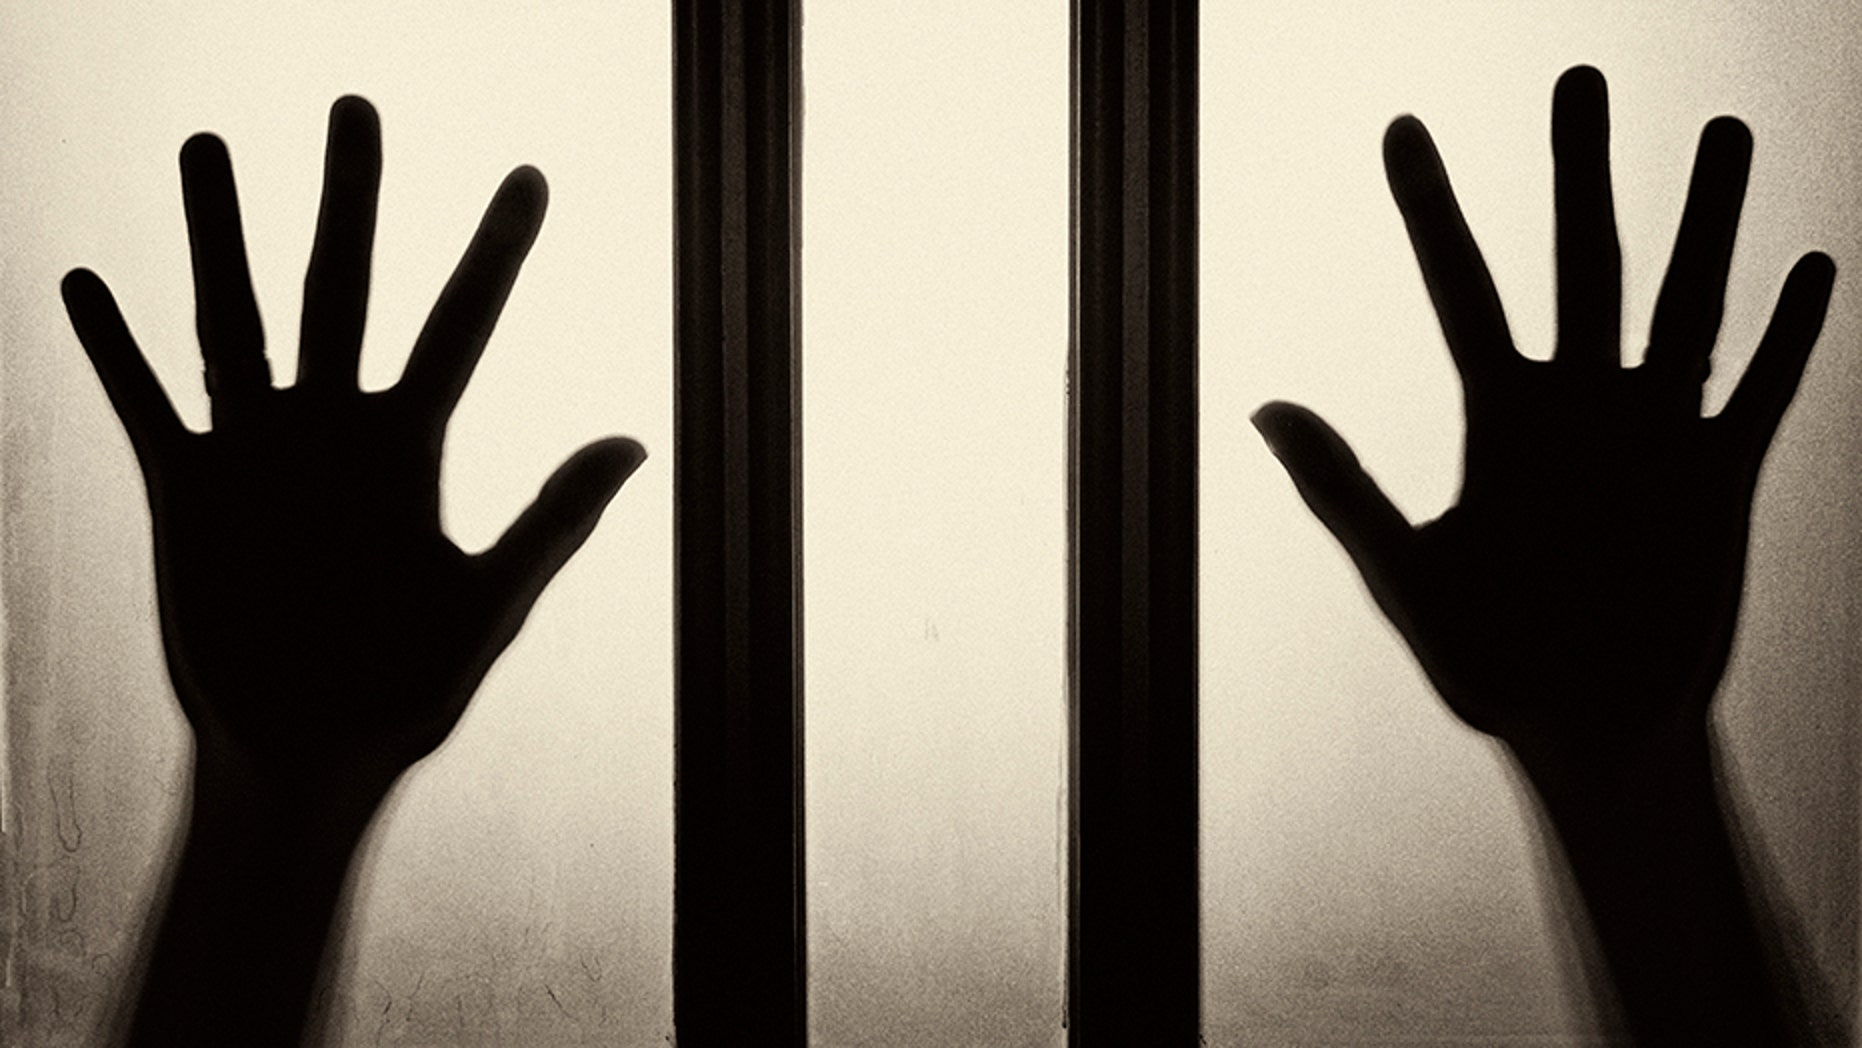 Female hand silhouette on the glass